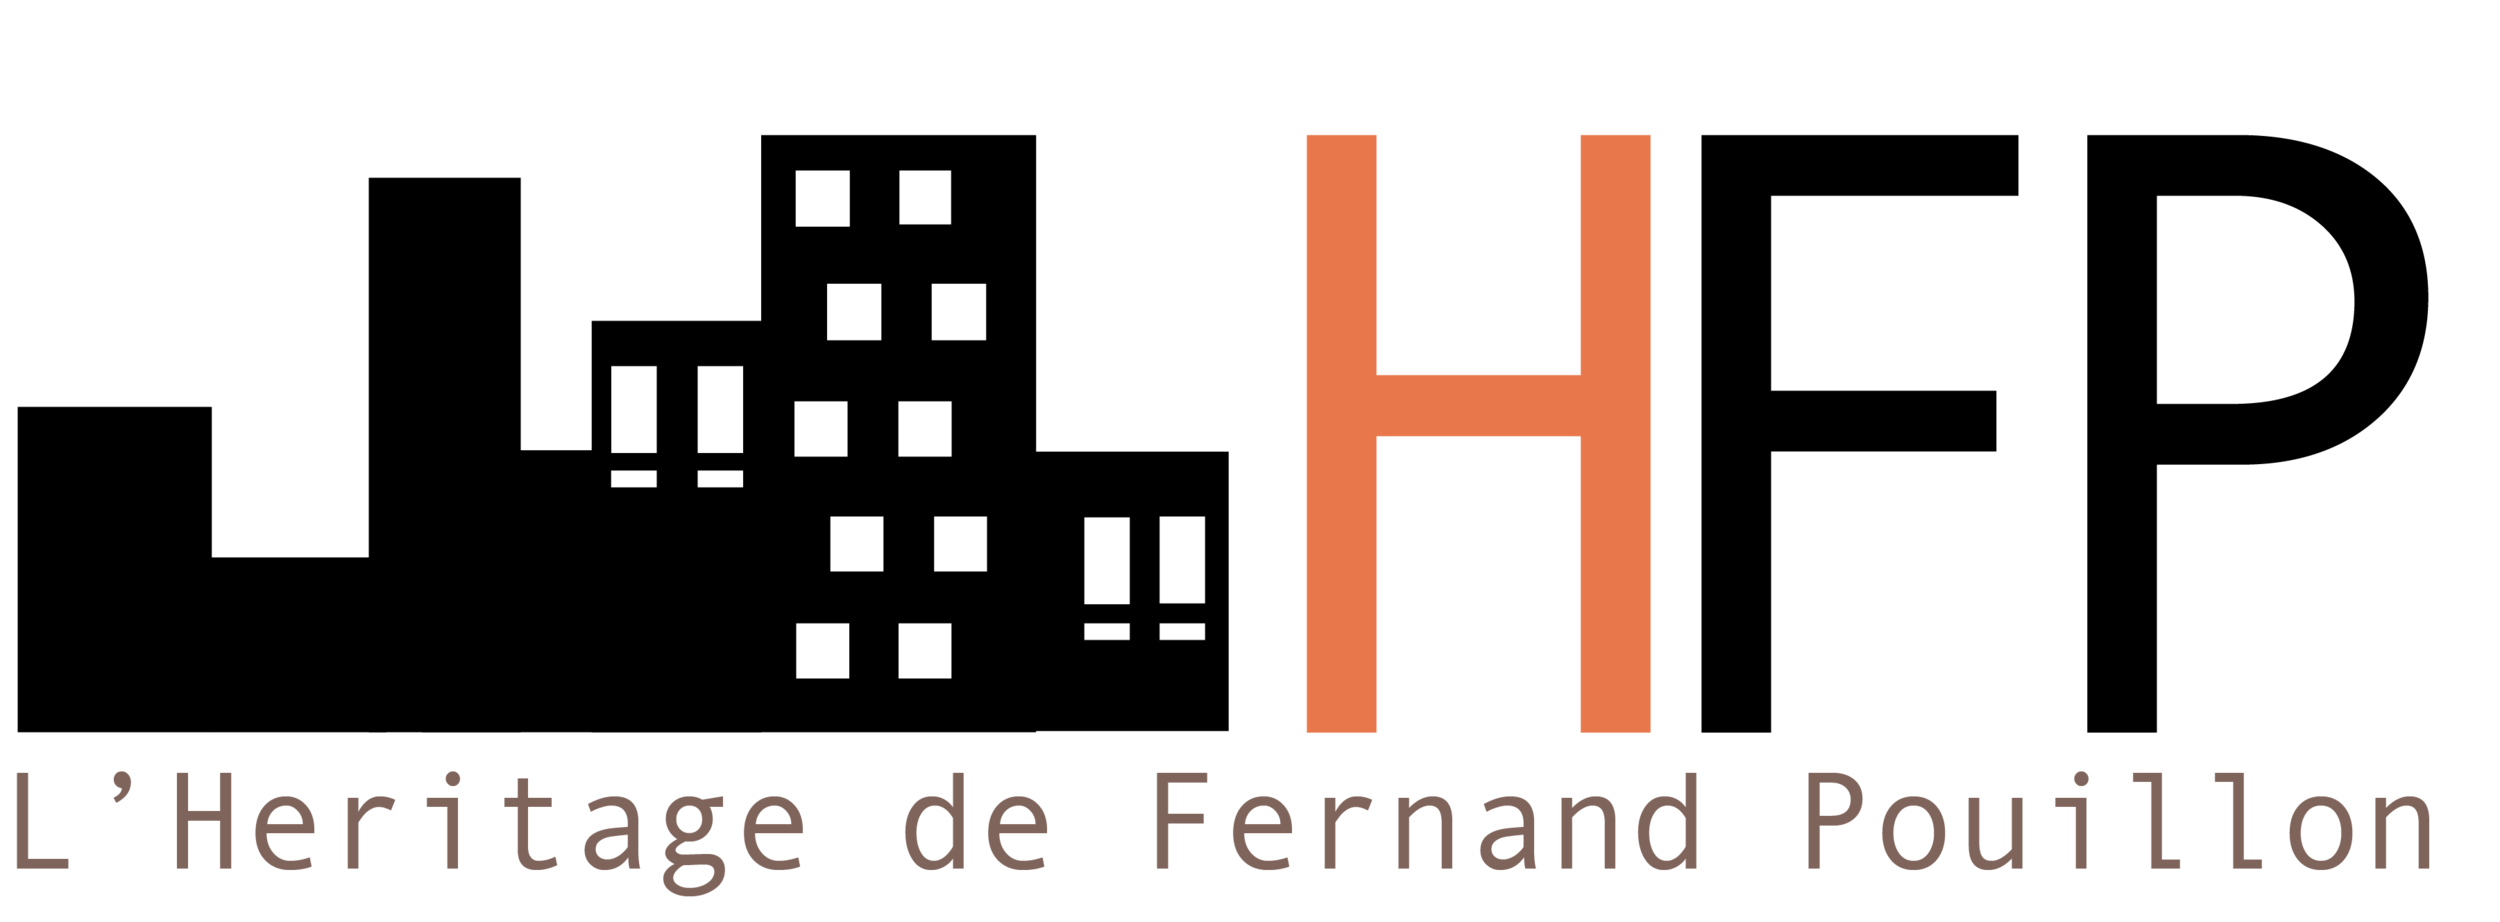 New FPH Logo (Color)3.png